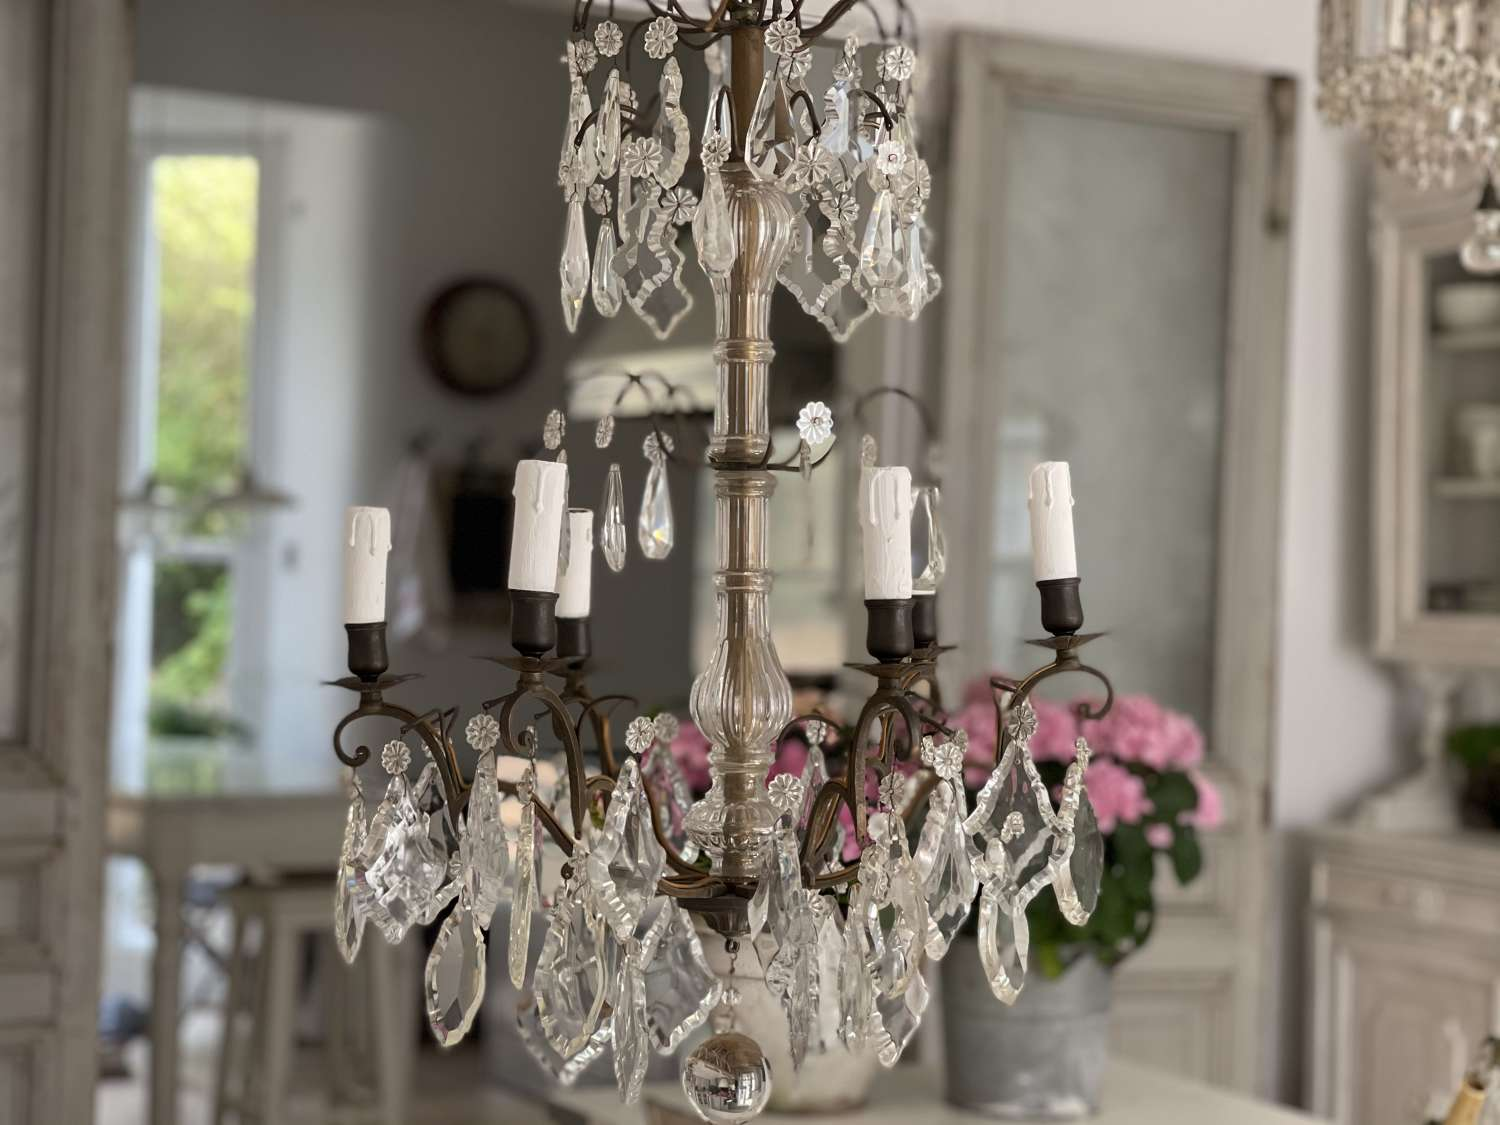 Large antique French crystal 6 arm chandelier